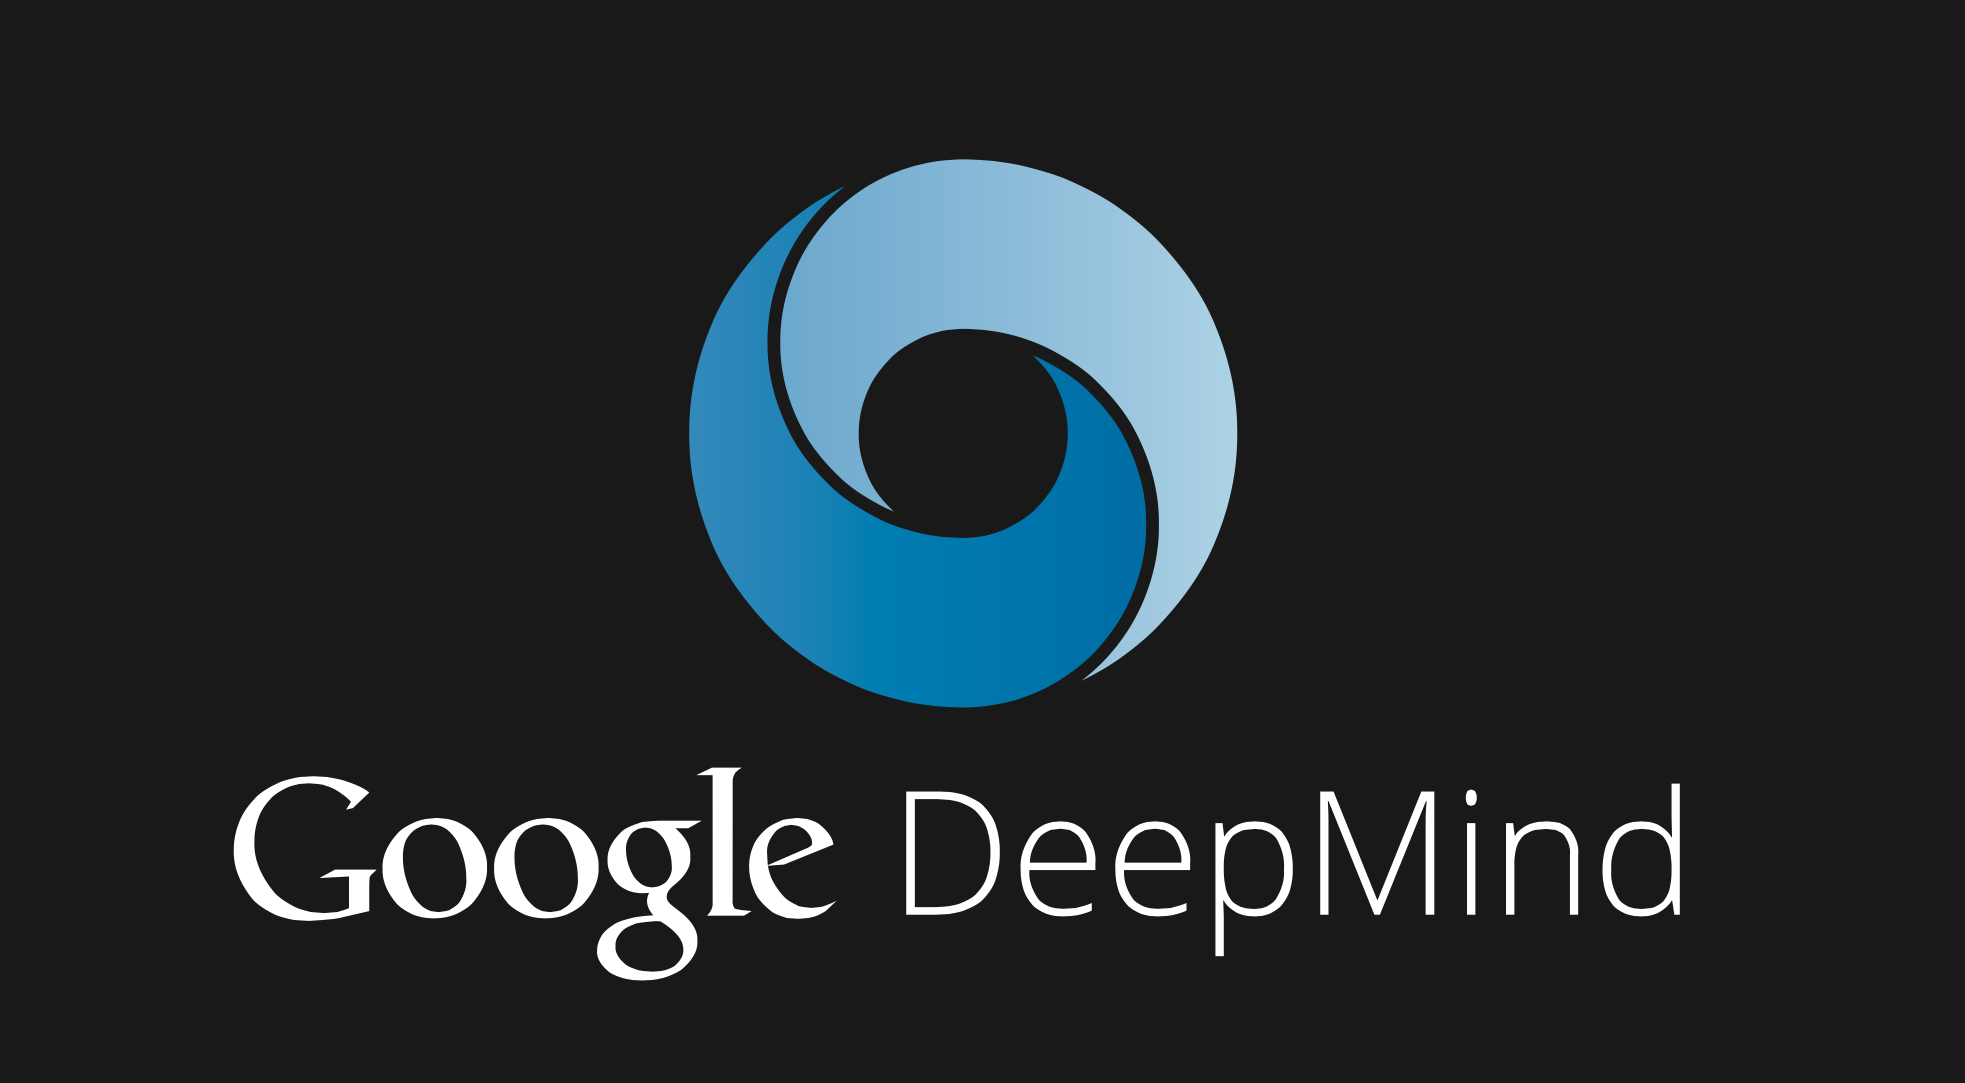 The co-founders of DeepMind AI lab said they would only agree to the acquisition if Google promised to set up an AI ethics board.